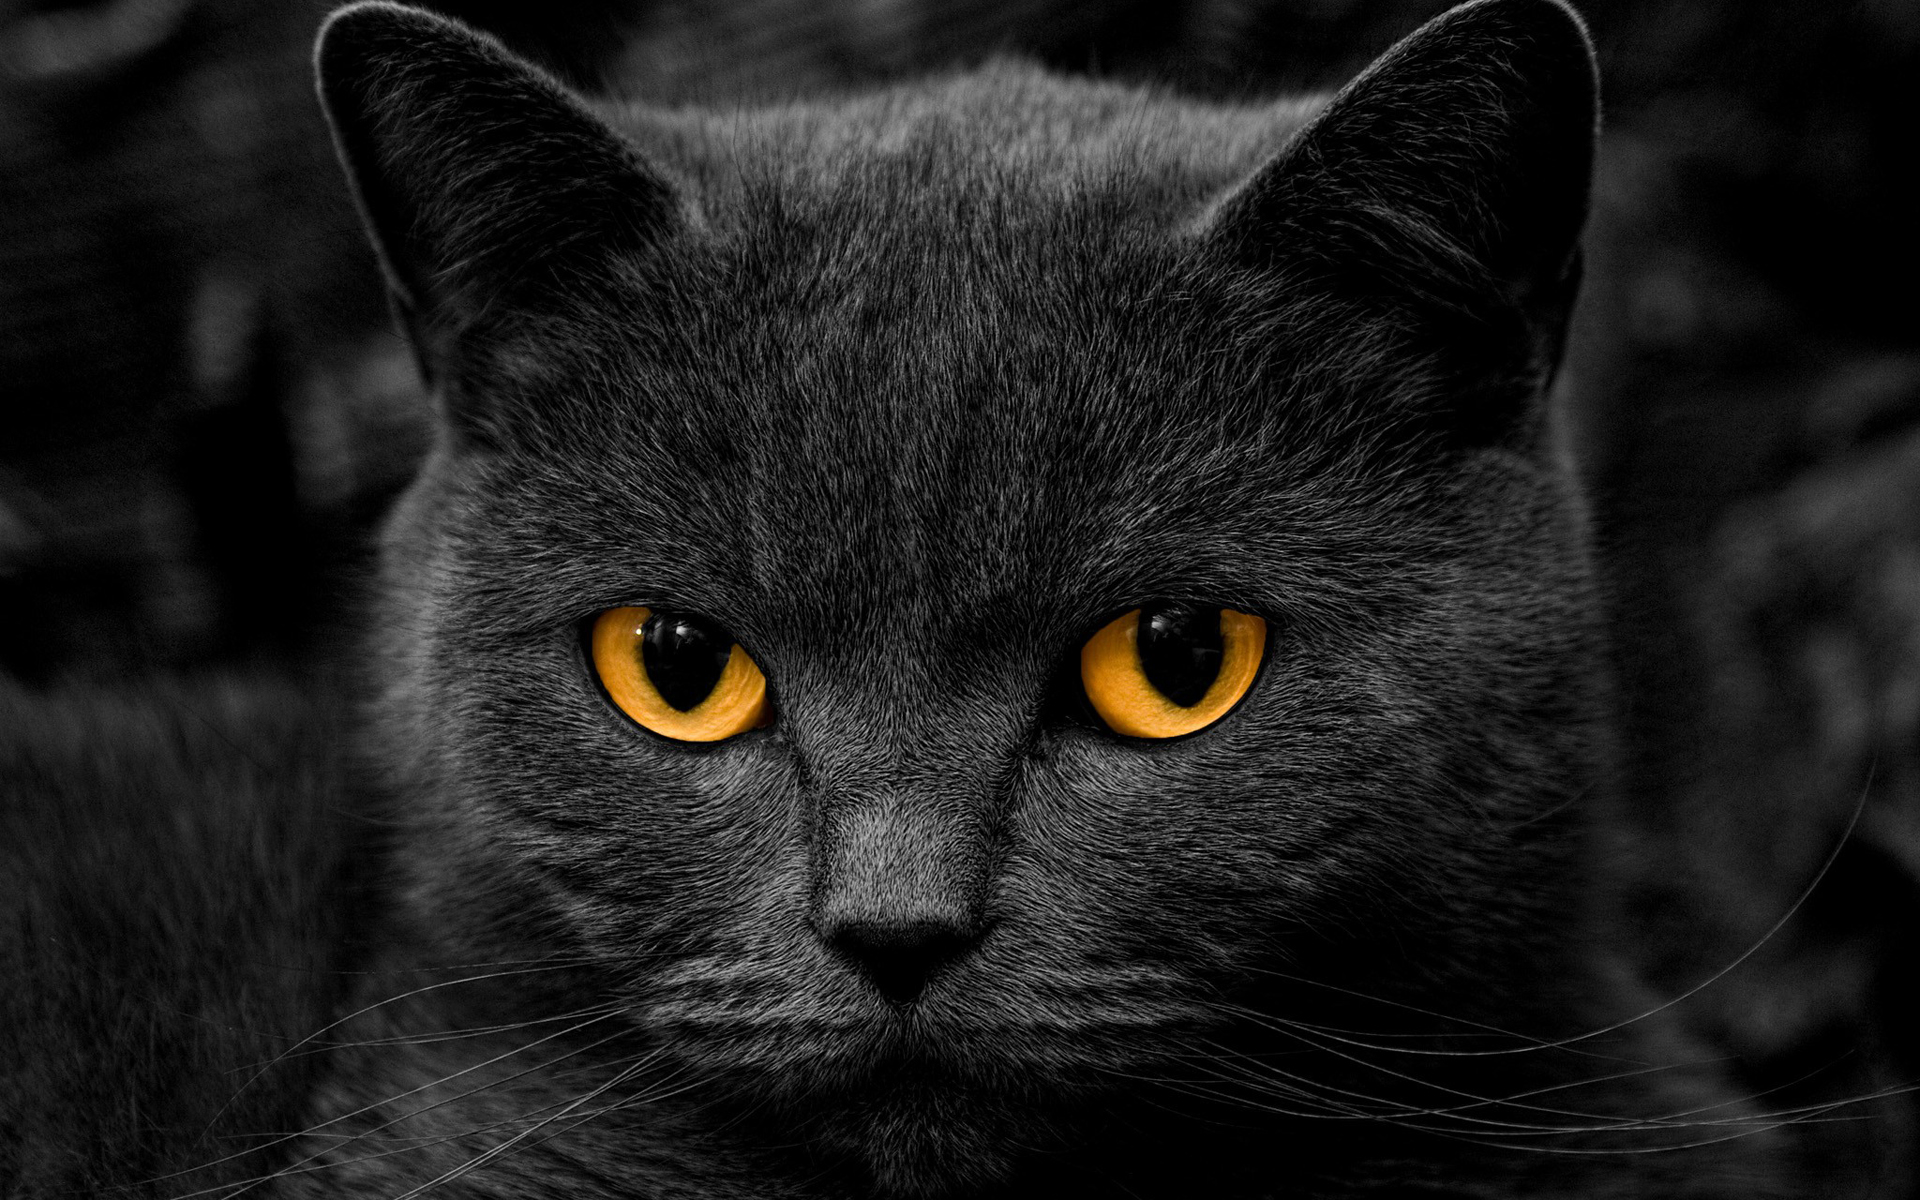 Simple Cat Wallpaper For Your Phone - awesome-black-cat-wallpaper-24147-24809-hd-wallpapers  Collection_934072 .jpg